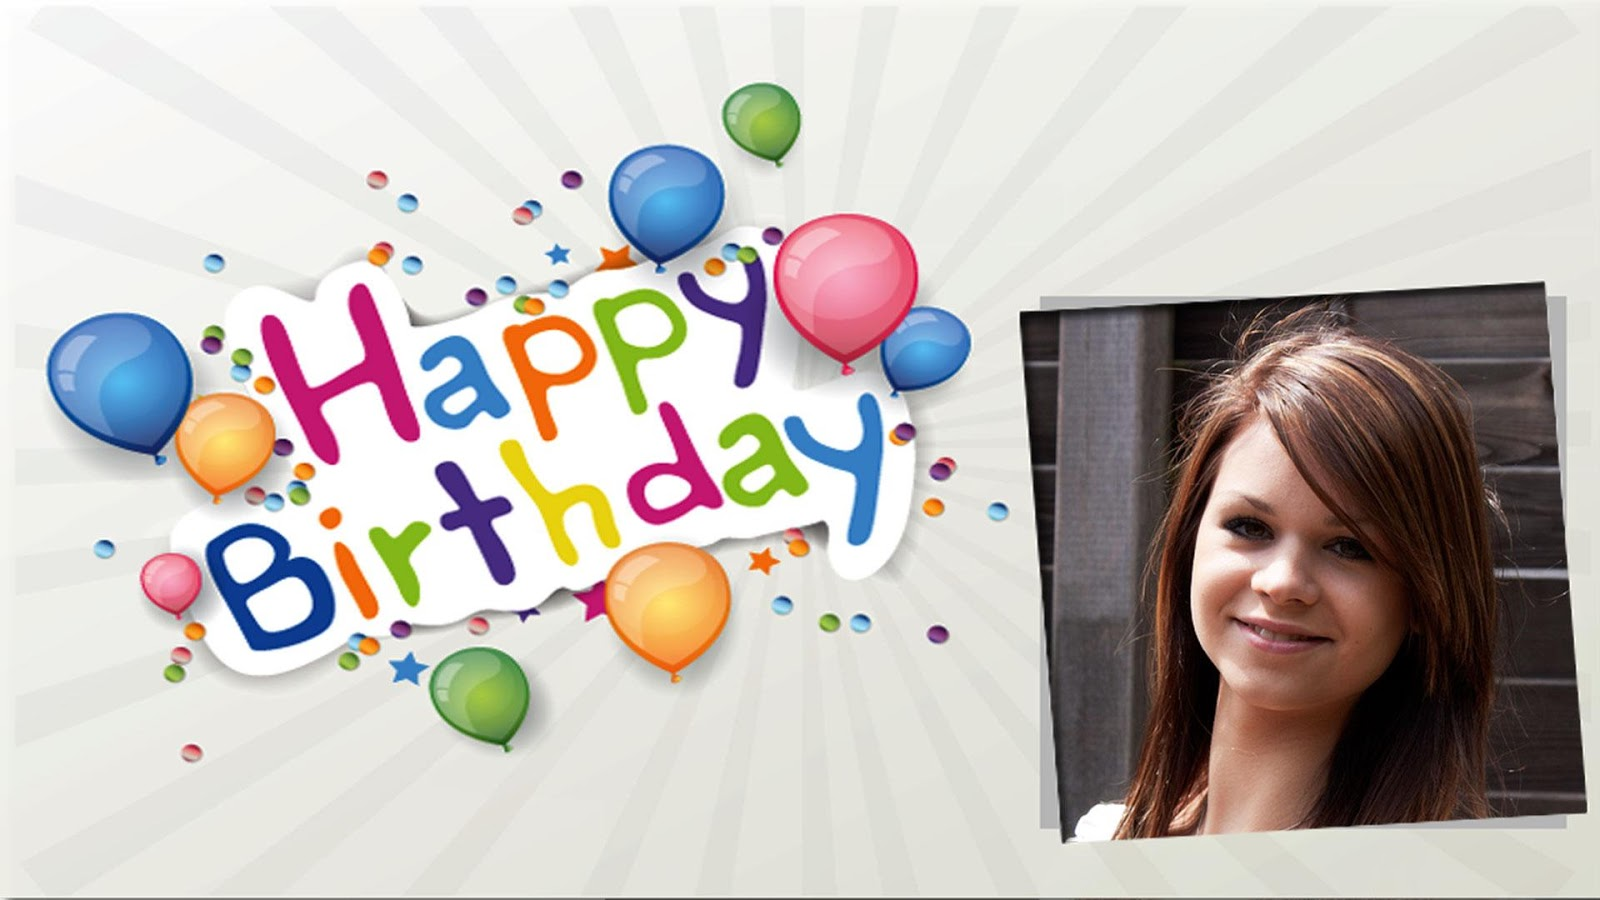 Happy Birthday Frame Wallpapers High Quality | Download Free